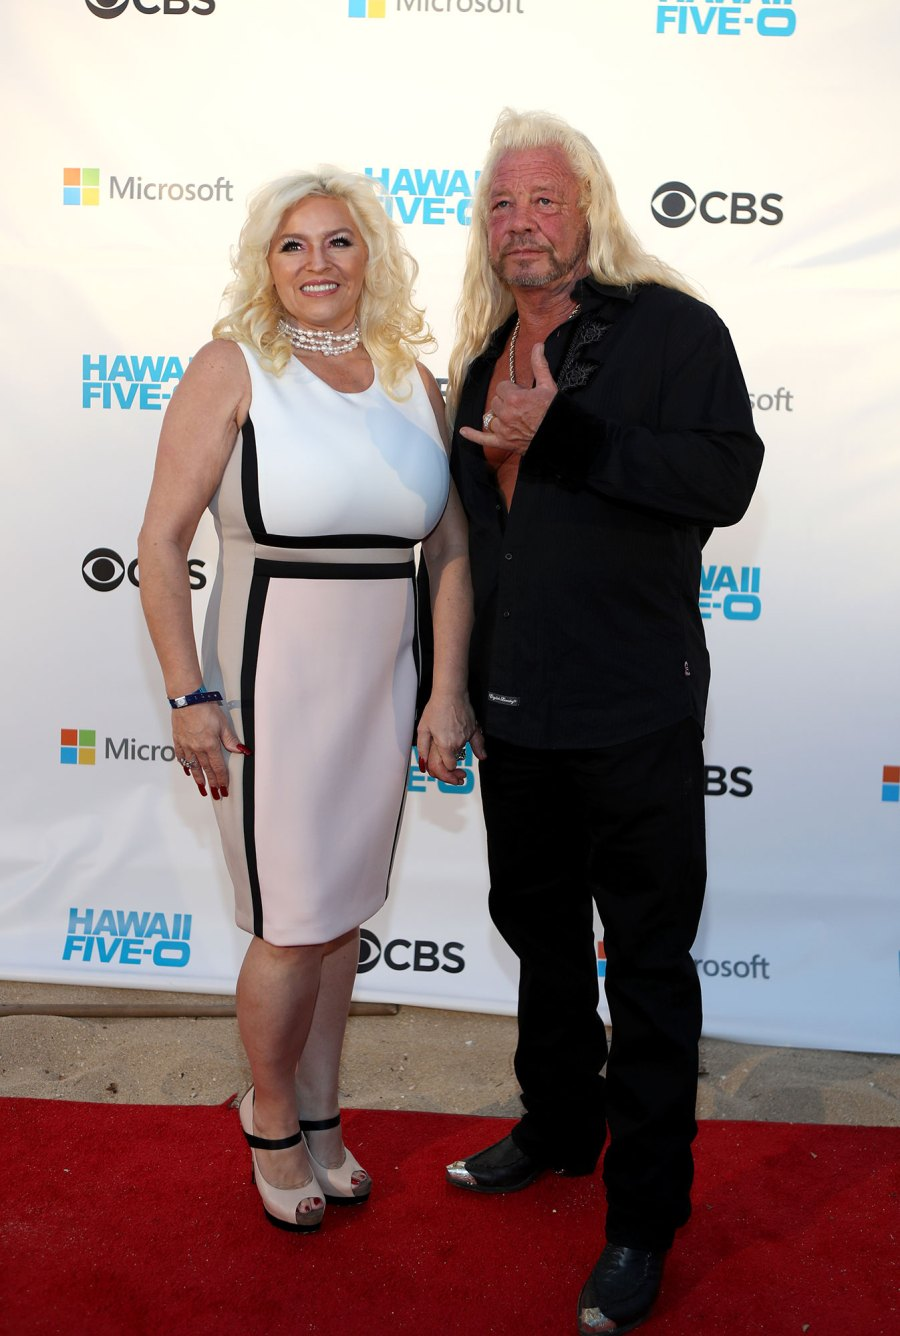 Beth Chapman Feels 'So Much Joy' at Dinner With Loved Ones After Hospitalization